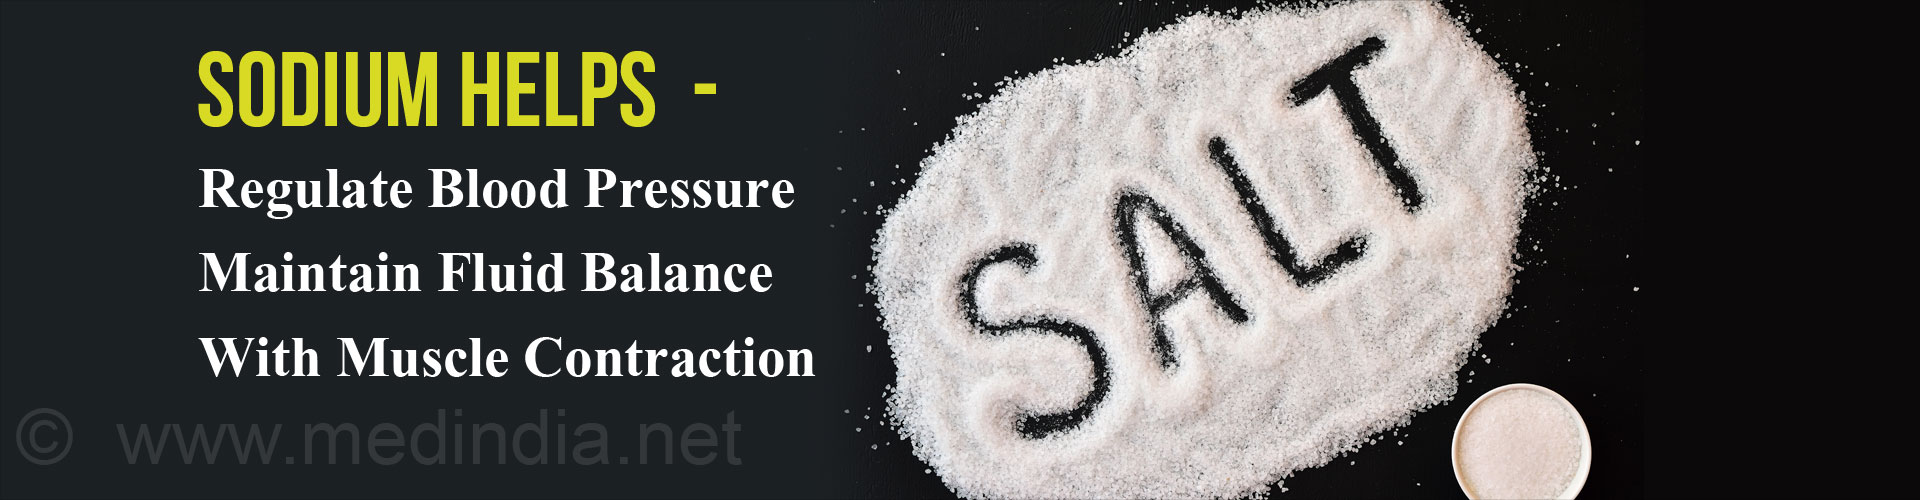 Sodium Helps